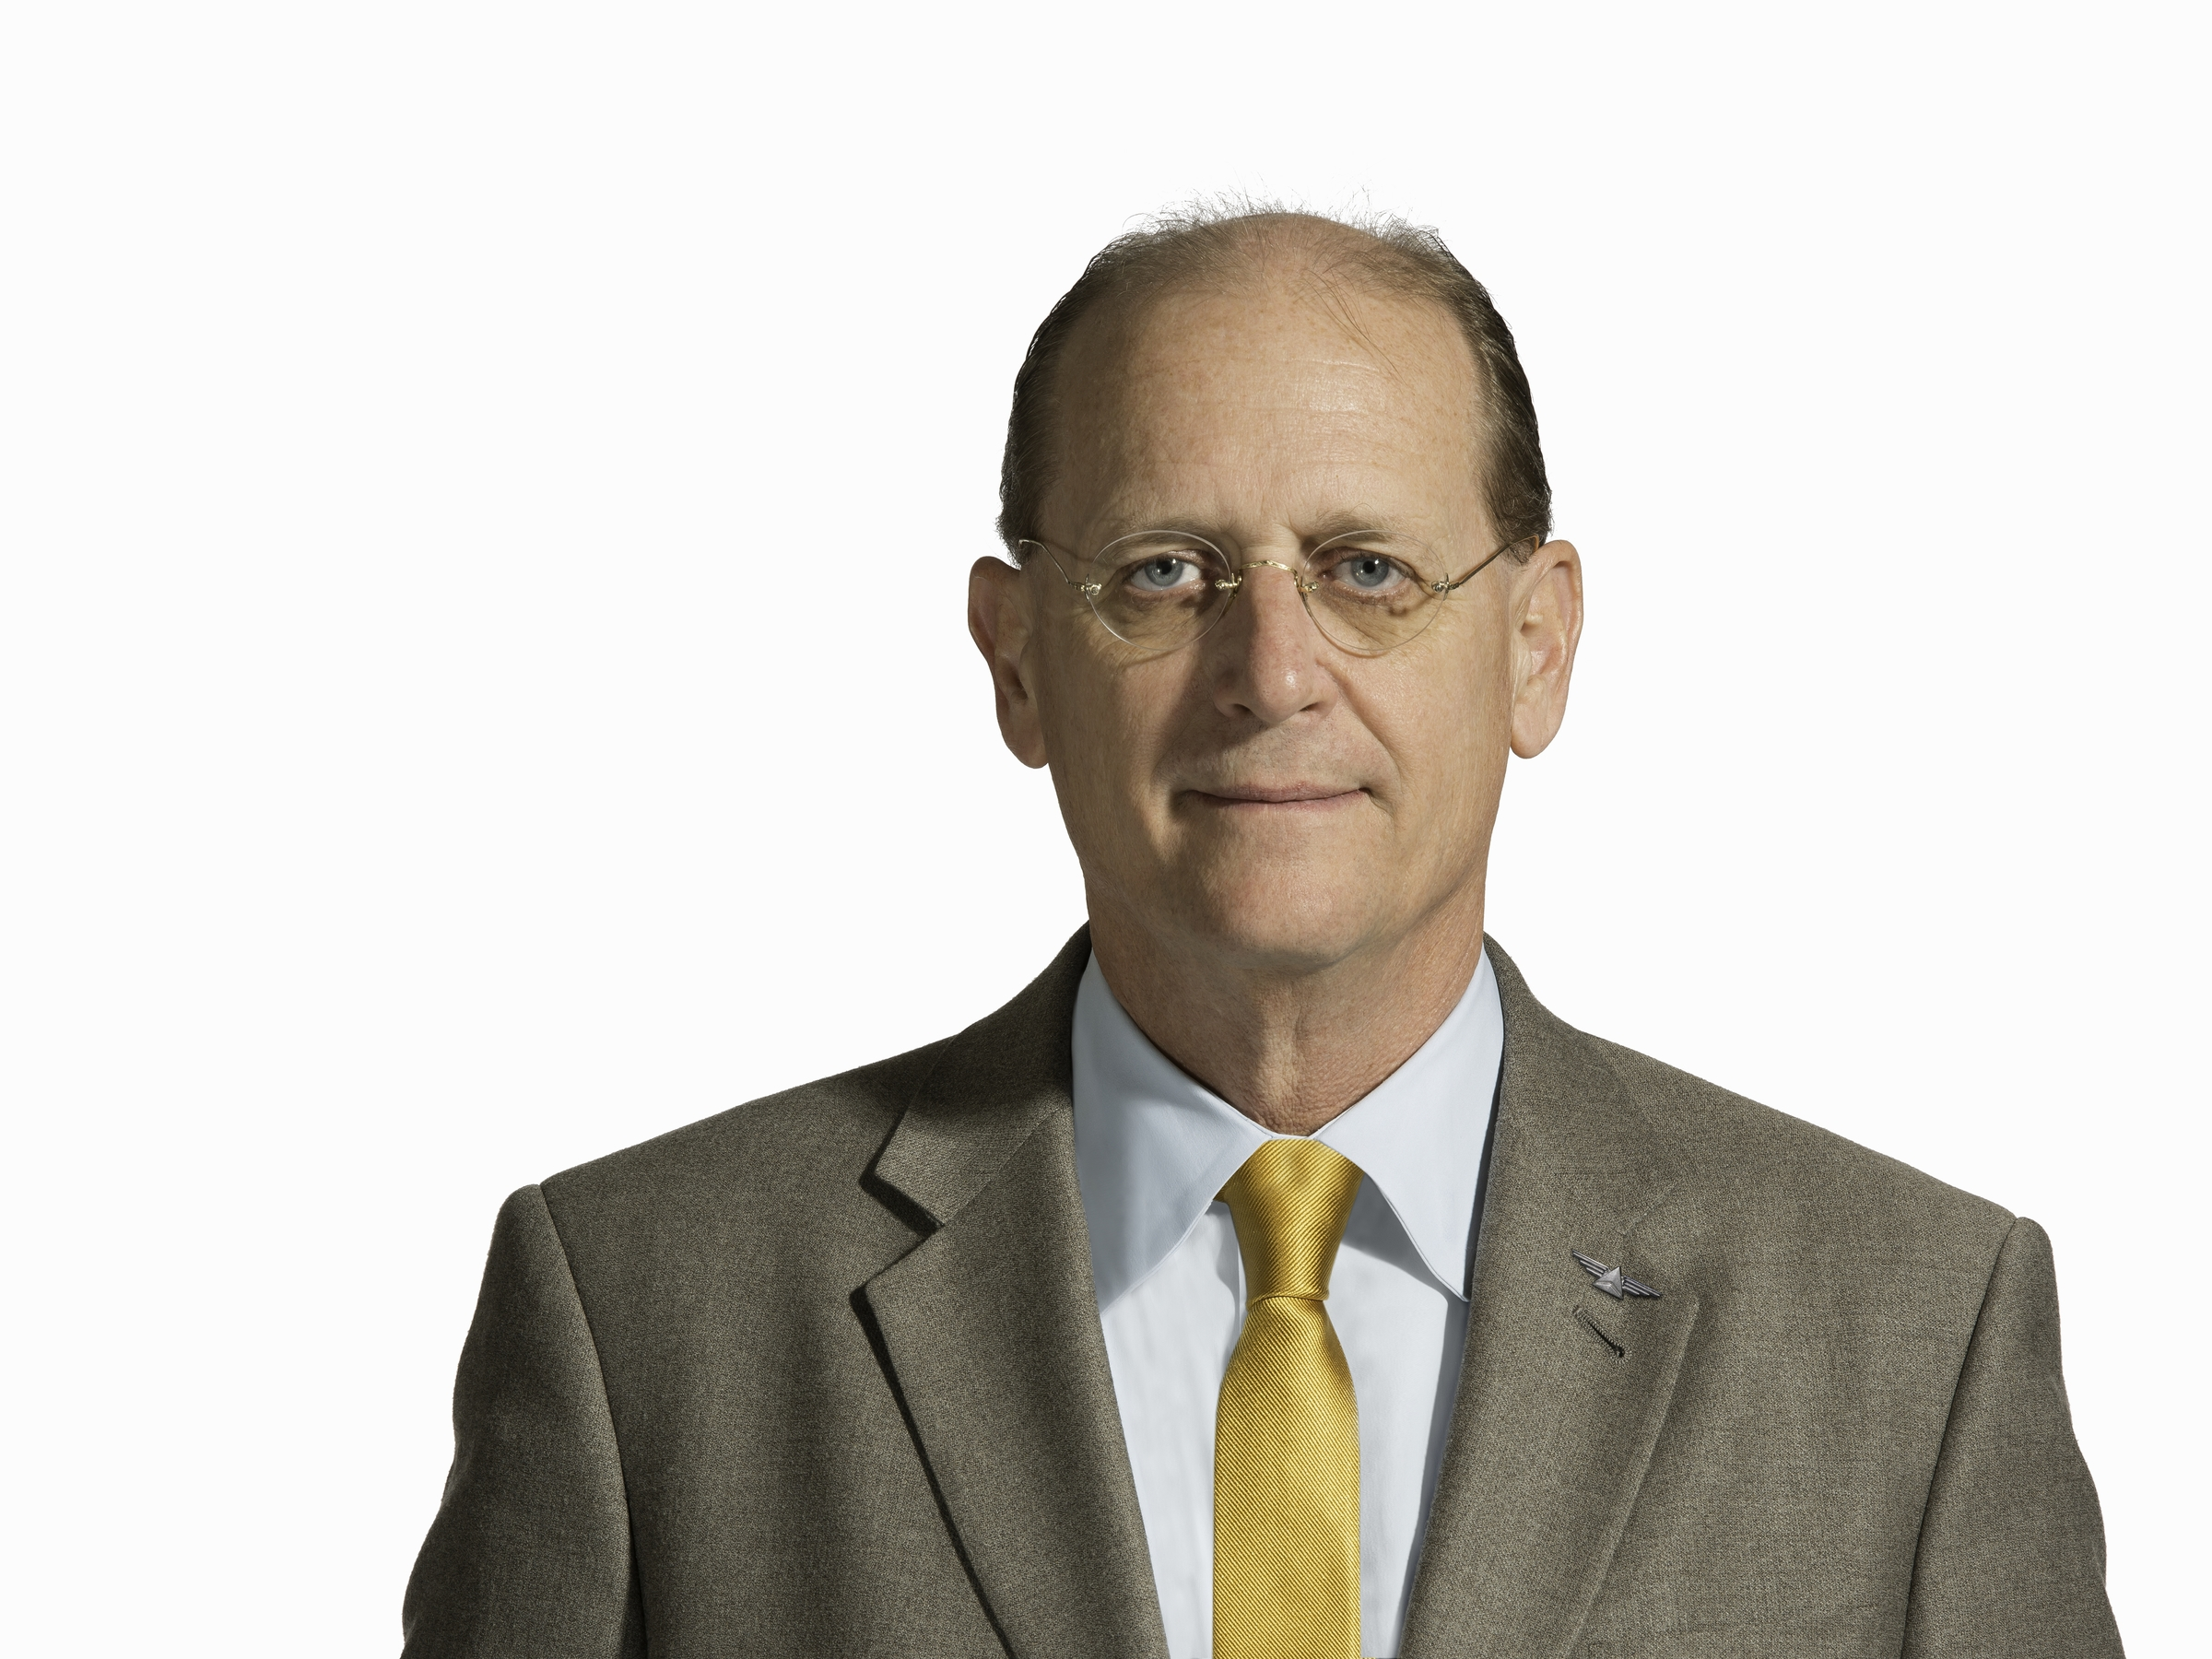 Richard Anderson, CEO - Corporate Leadership Team (CLT)